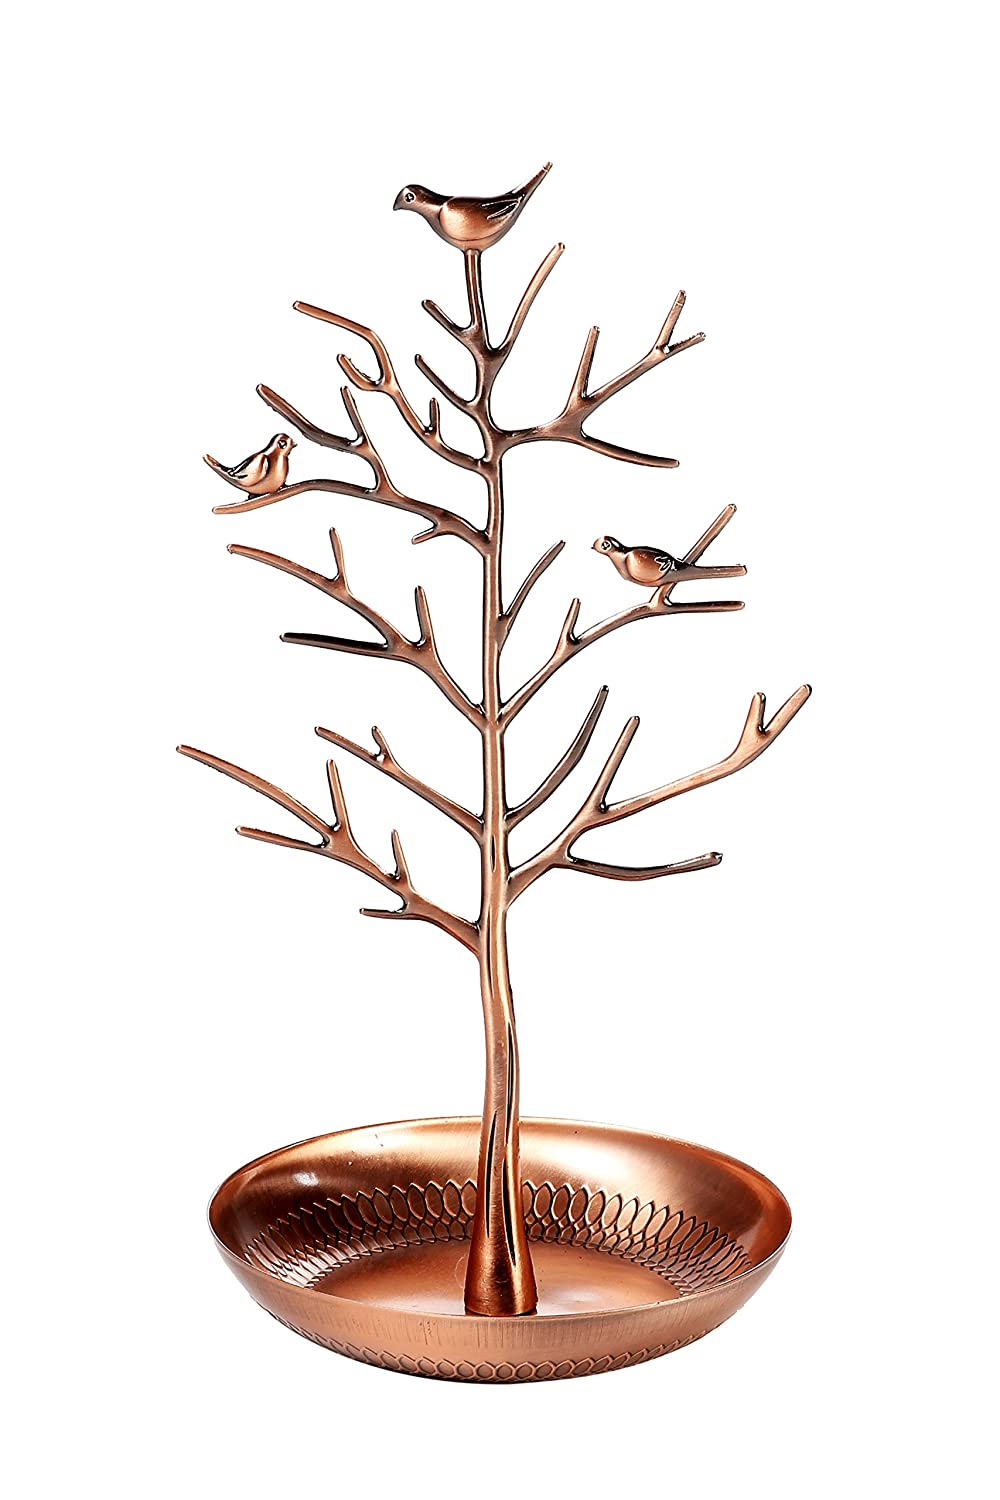 Shabby Chic Birds in Tree Jewelry Display - Holder Organizer Necklaces, Bracelets, Earrings - Copper Plated Juvale